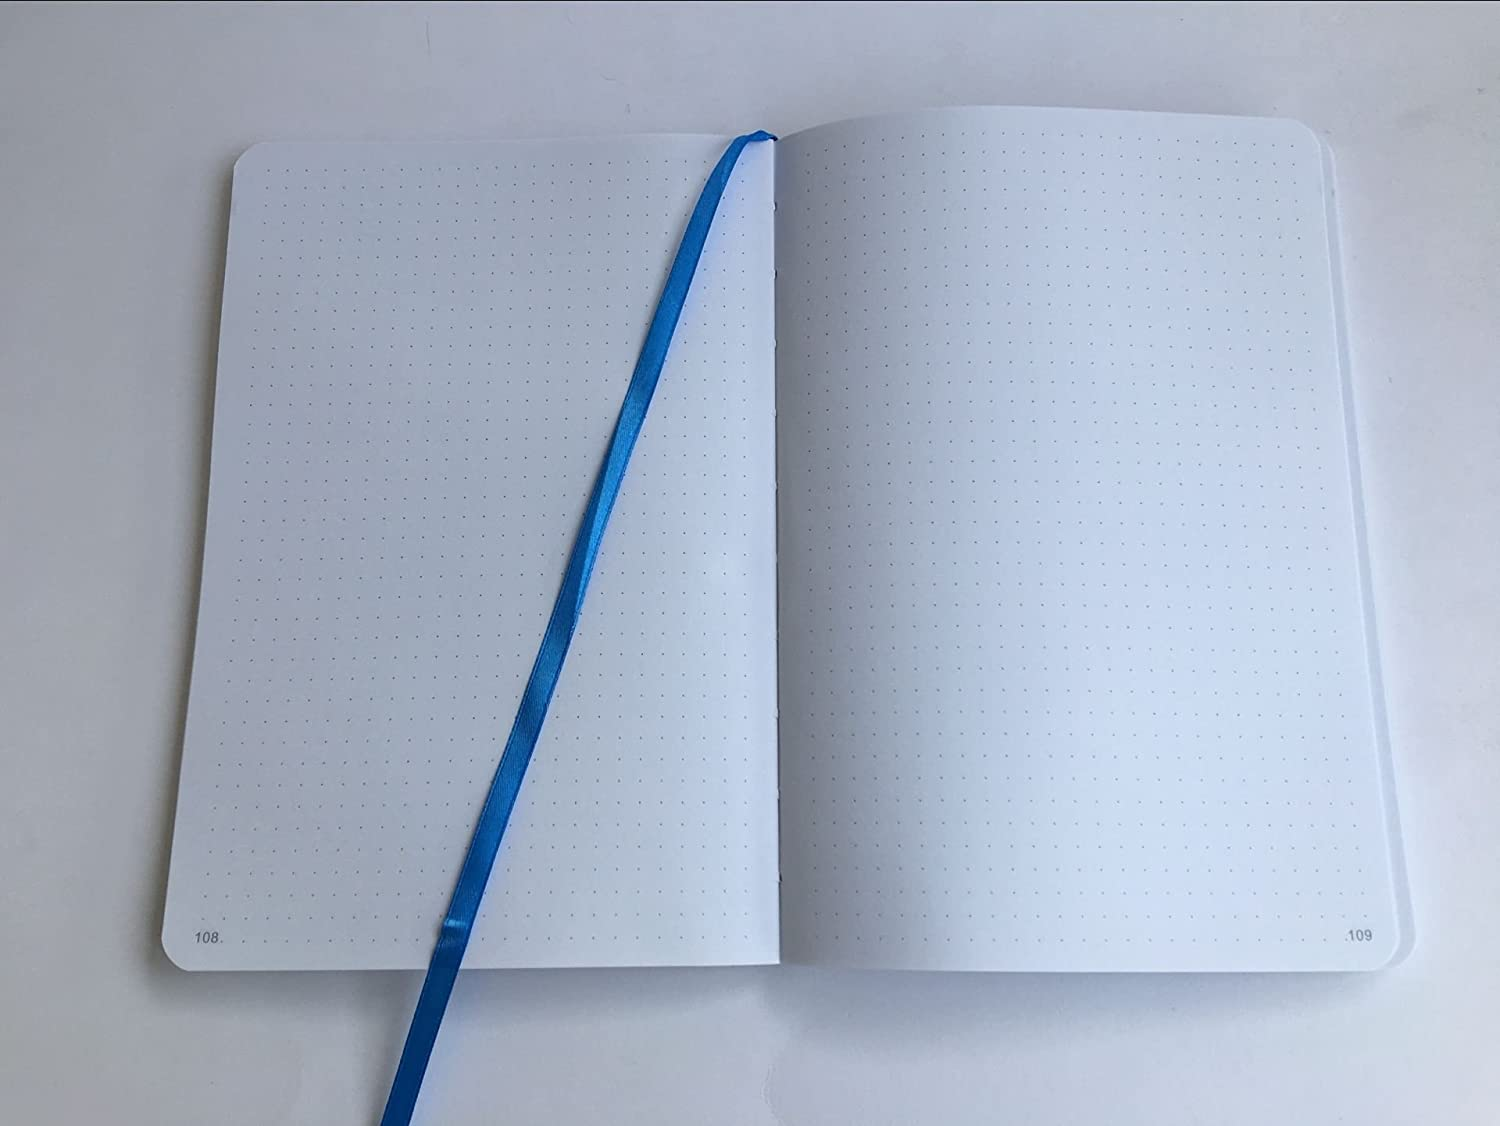 240 Numbered Pages Lay Flat Binding Dot Grid Refill for SohoSpark Writing Journal